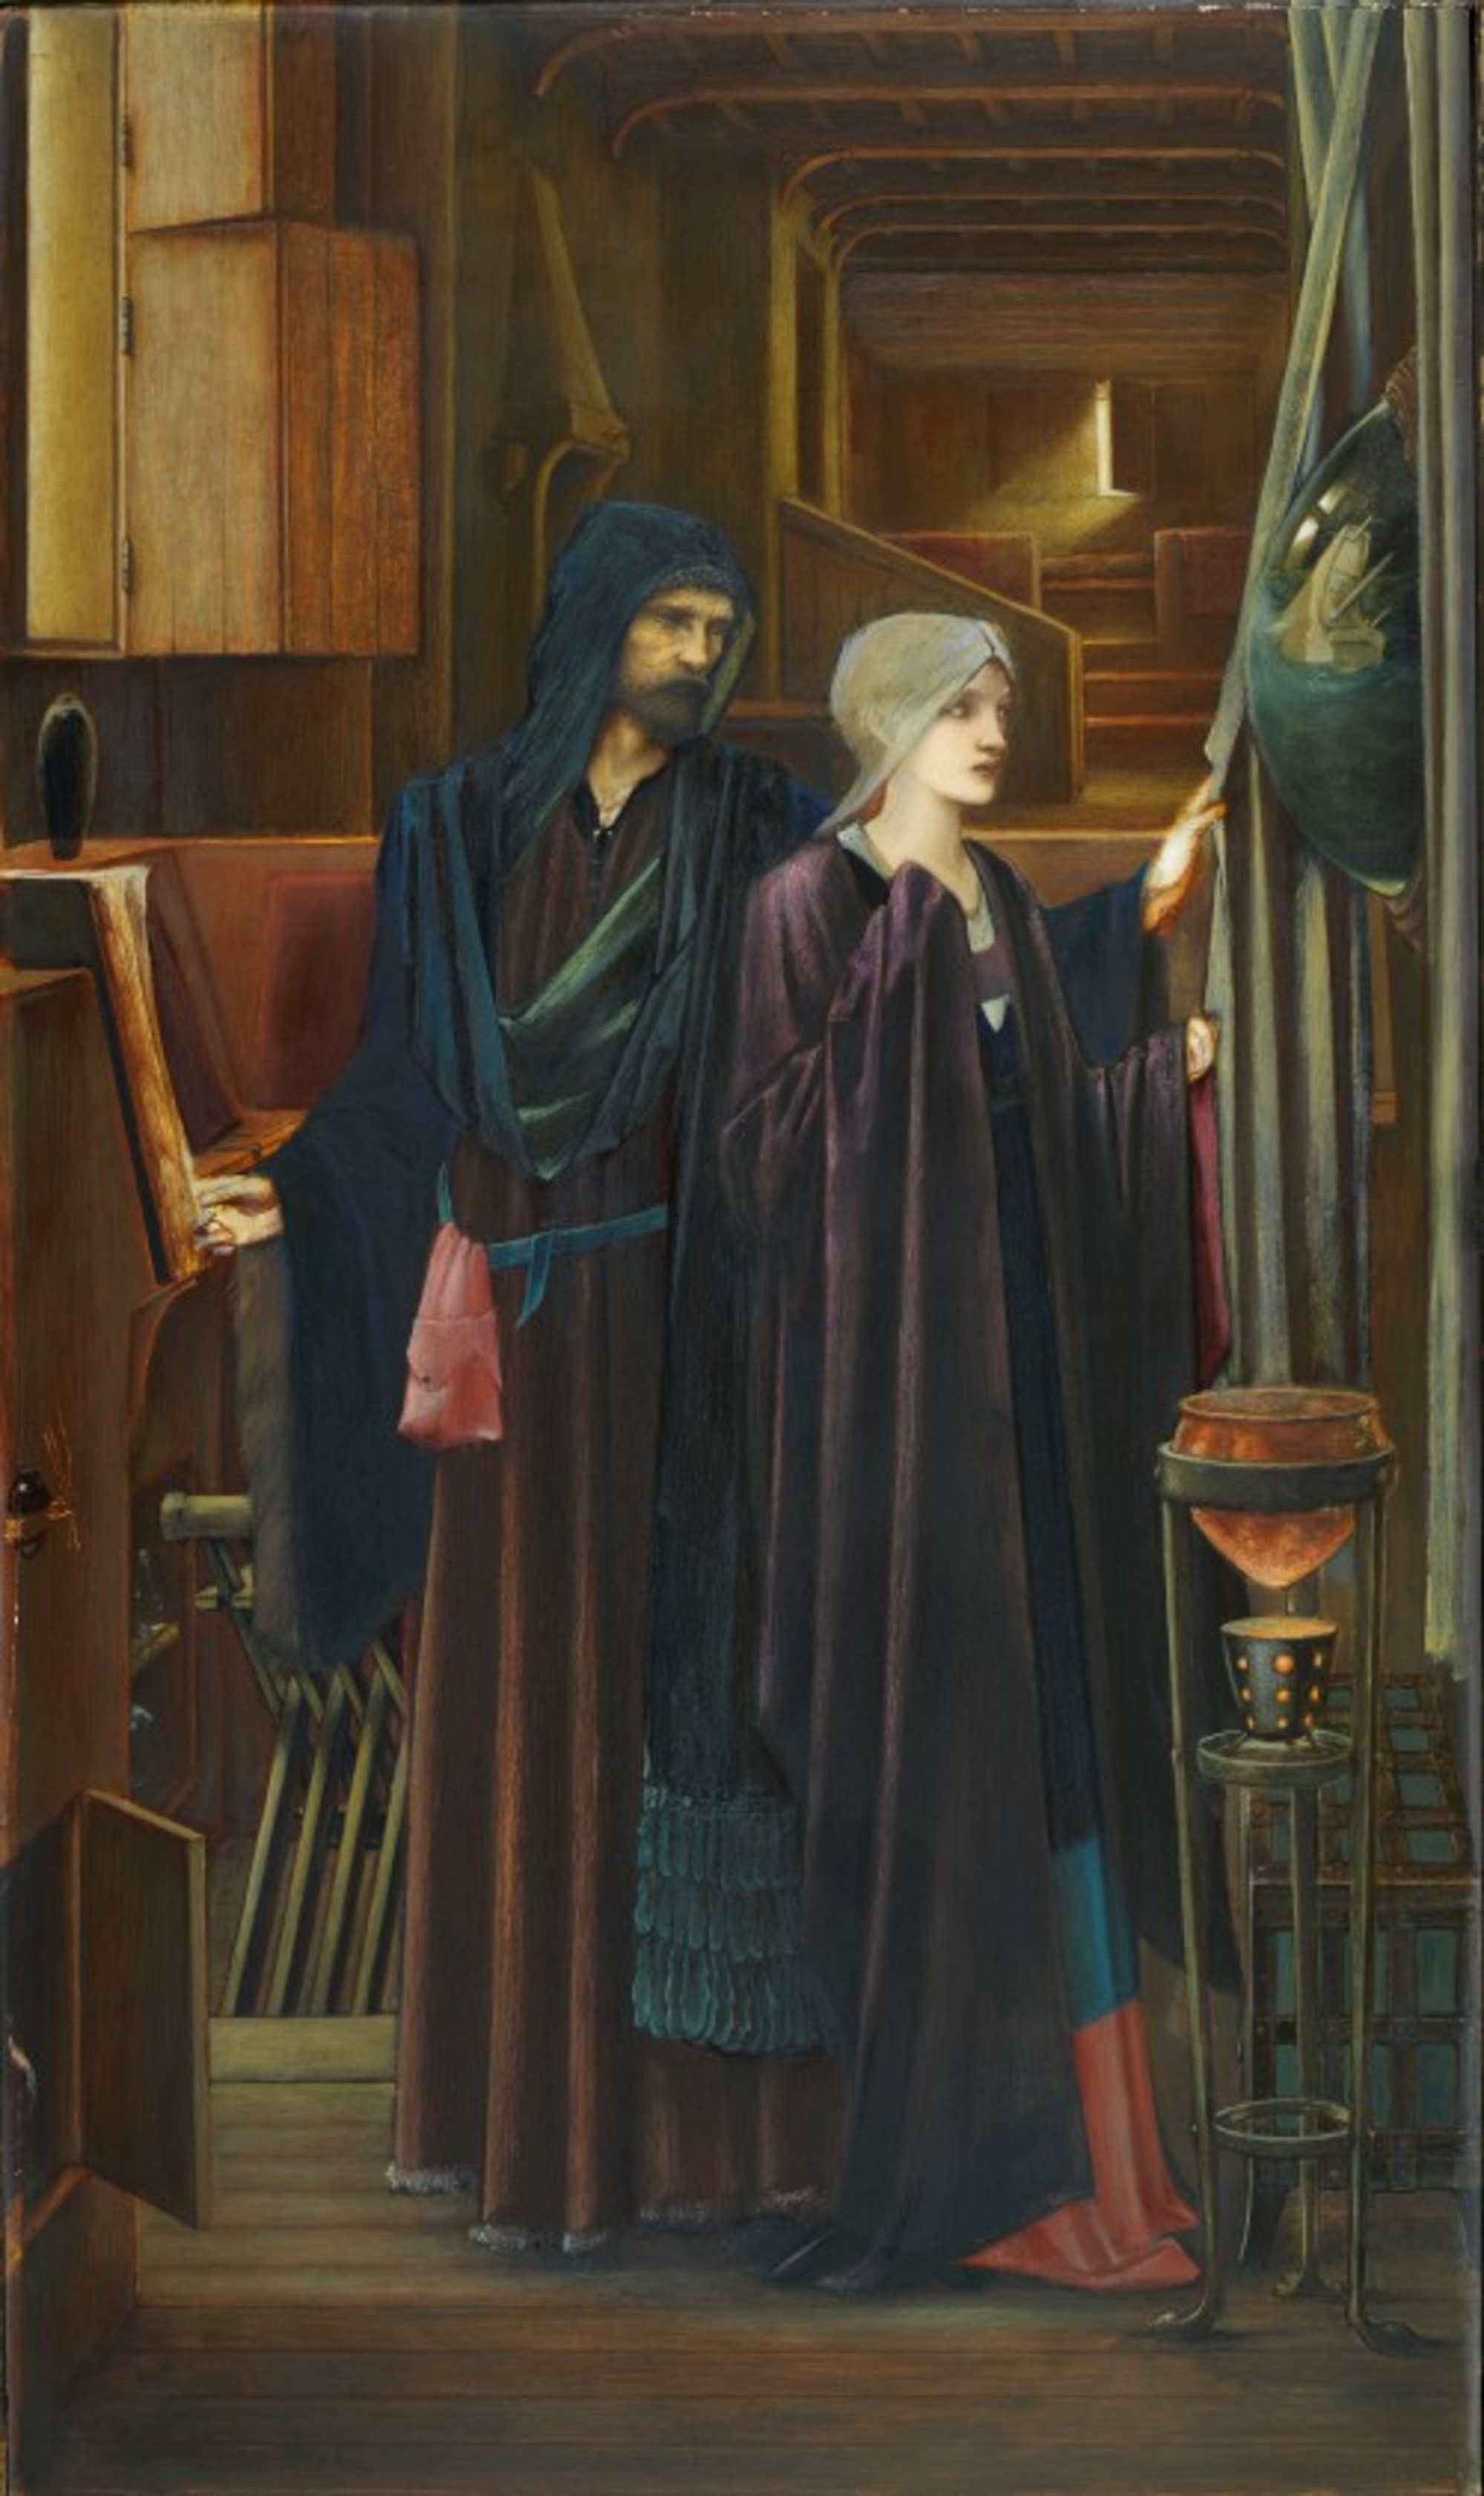 Edward-Burne-Jones---The-Wizard---Google-Art-Project.jpg